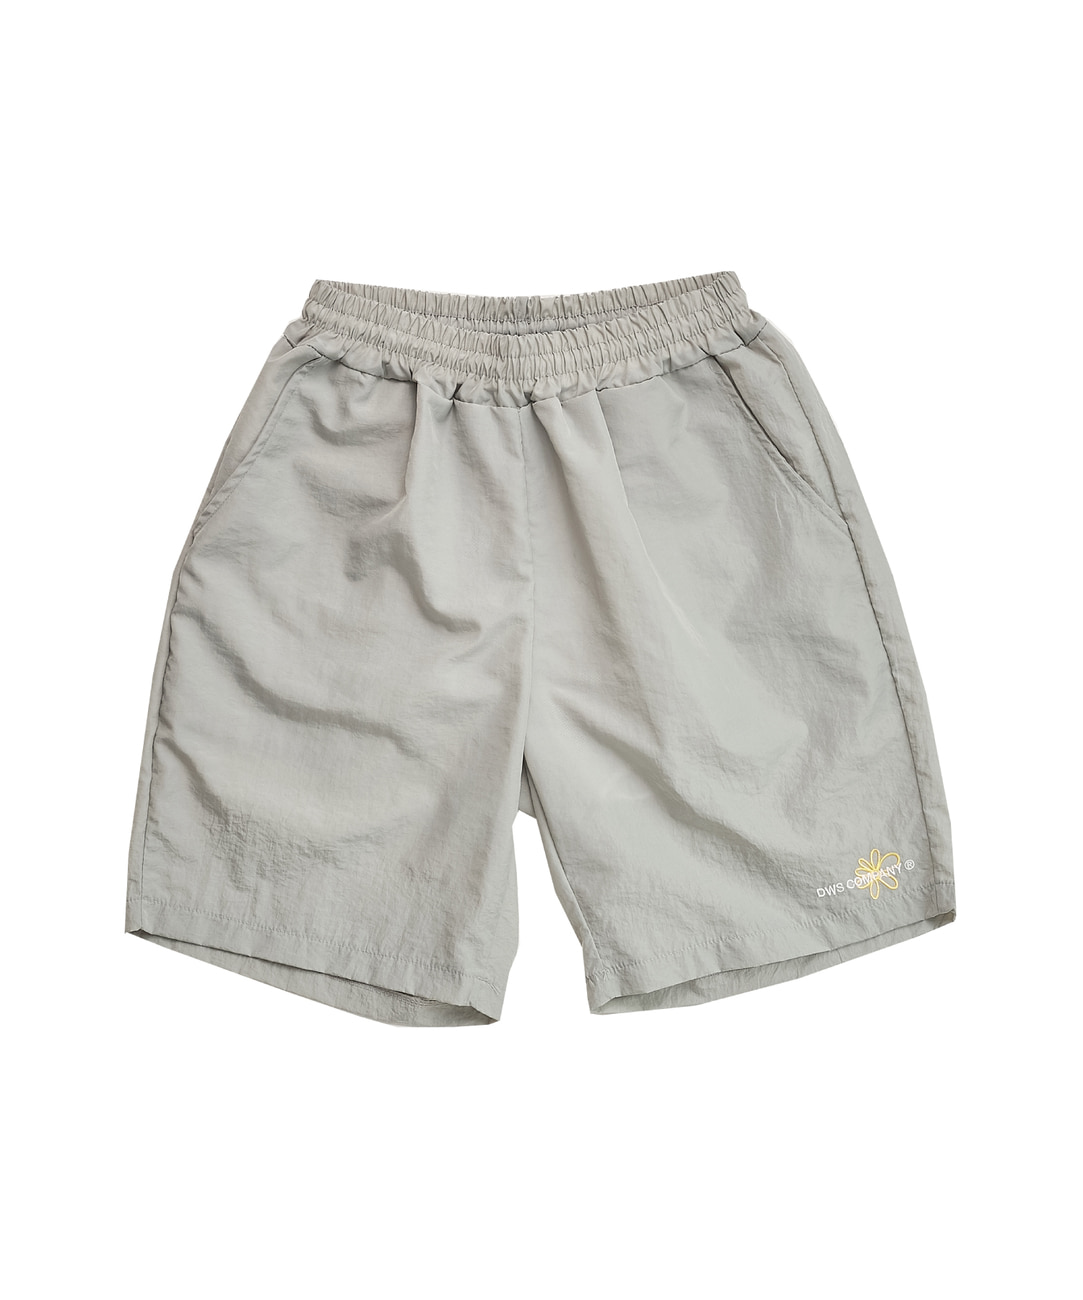 DWS FLOWER LOGO SHORTS(GREY)